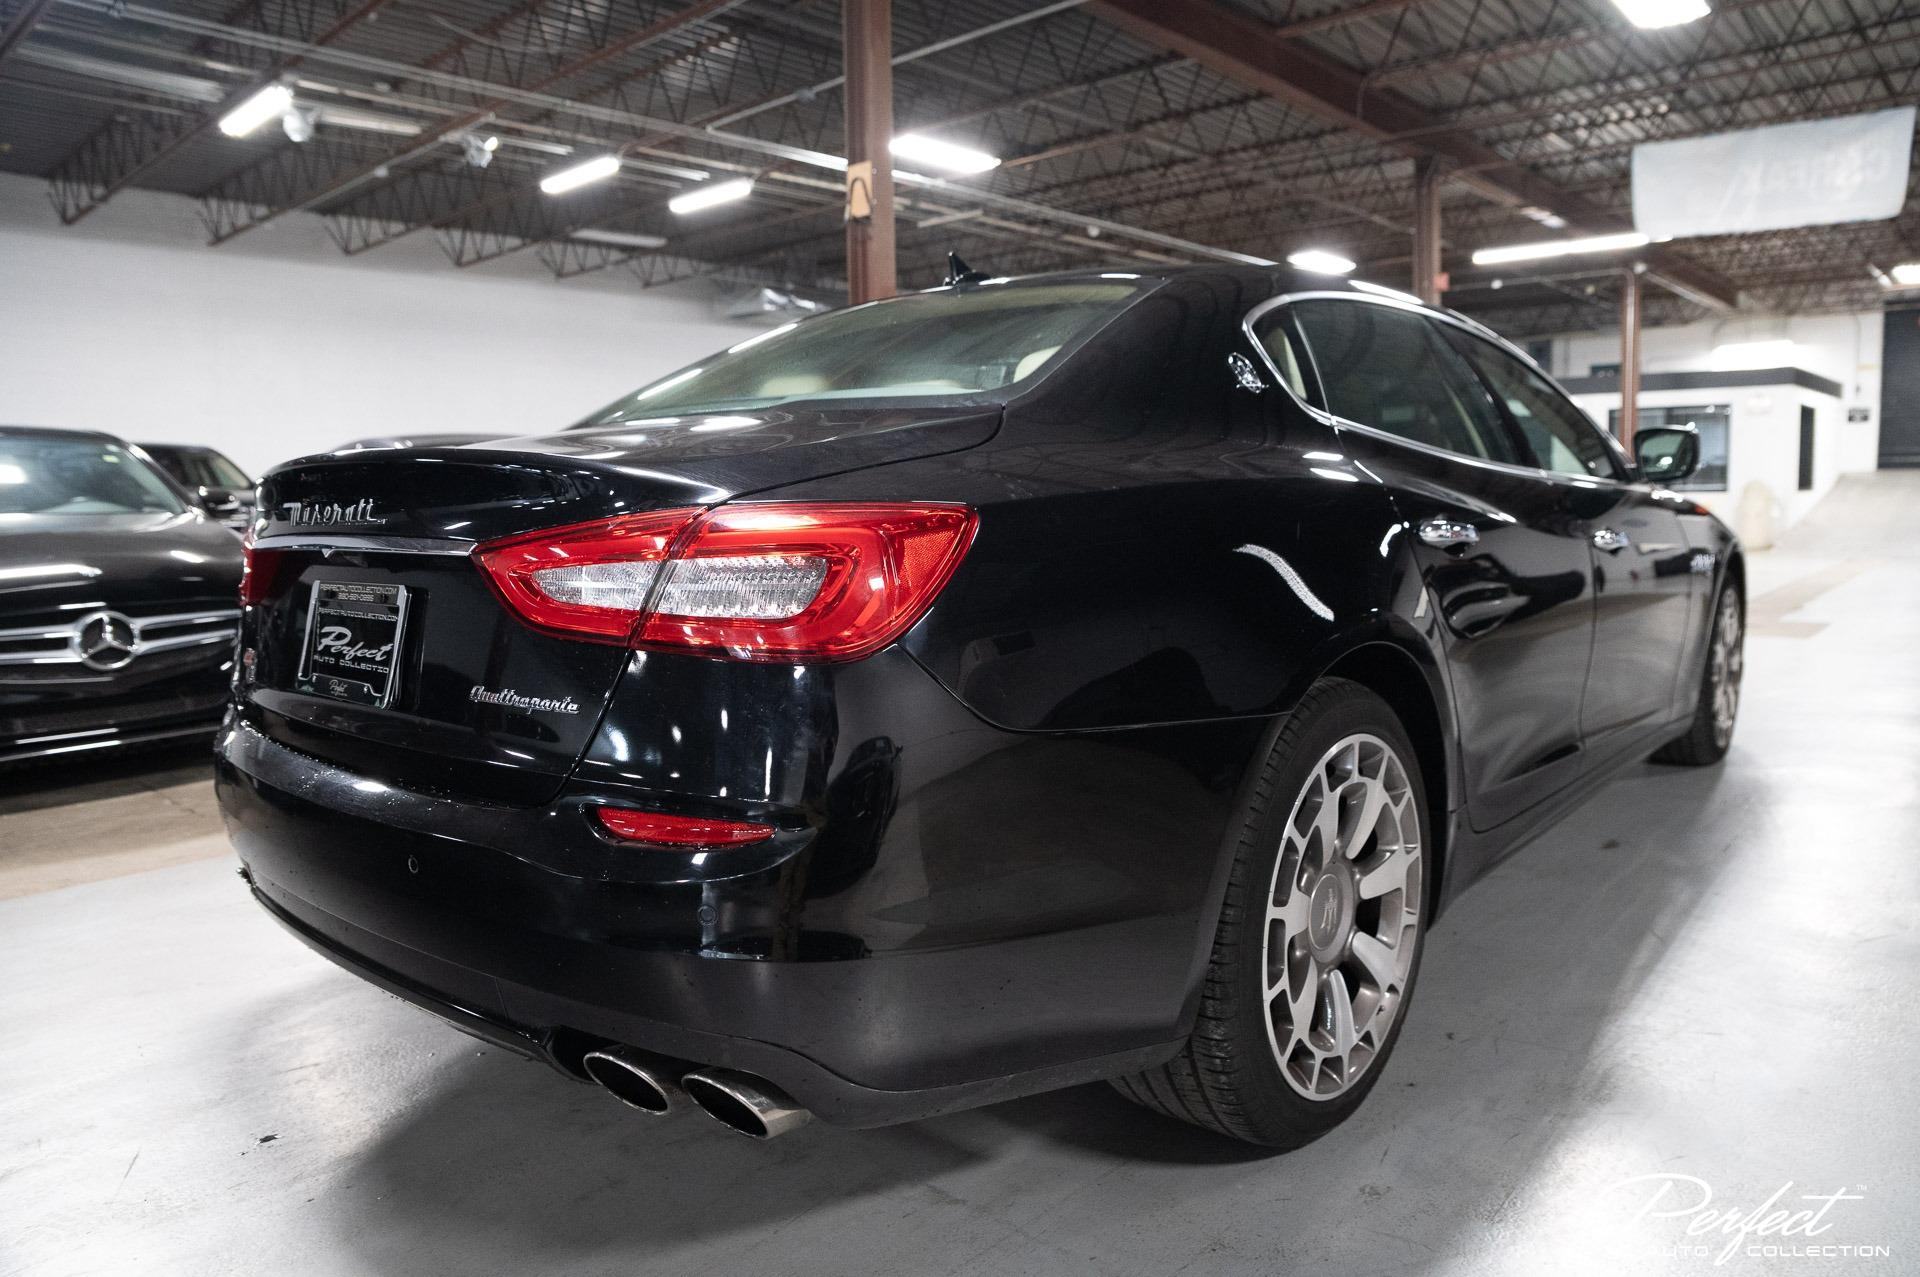 Used 2014 Maserati Quattroporte S Q4 for sale Sold at Perfect Auto Collection in Akron OH 44310 4